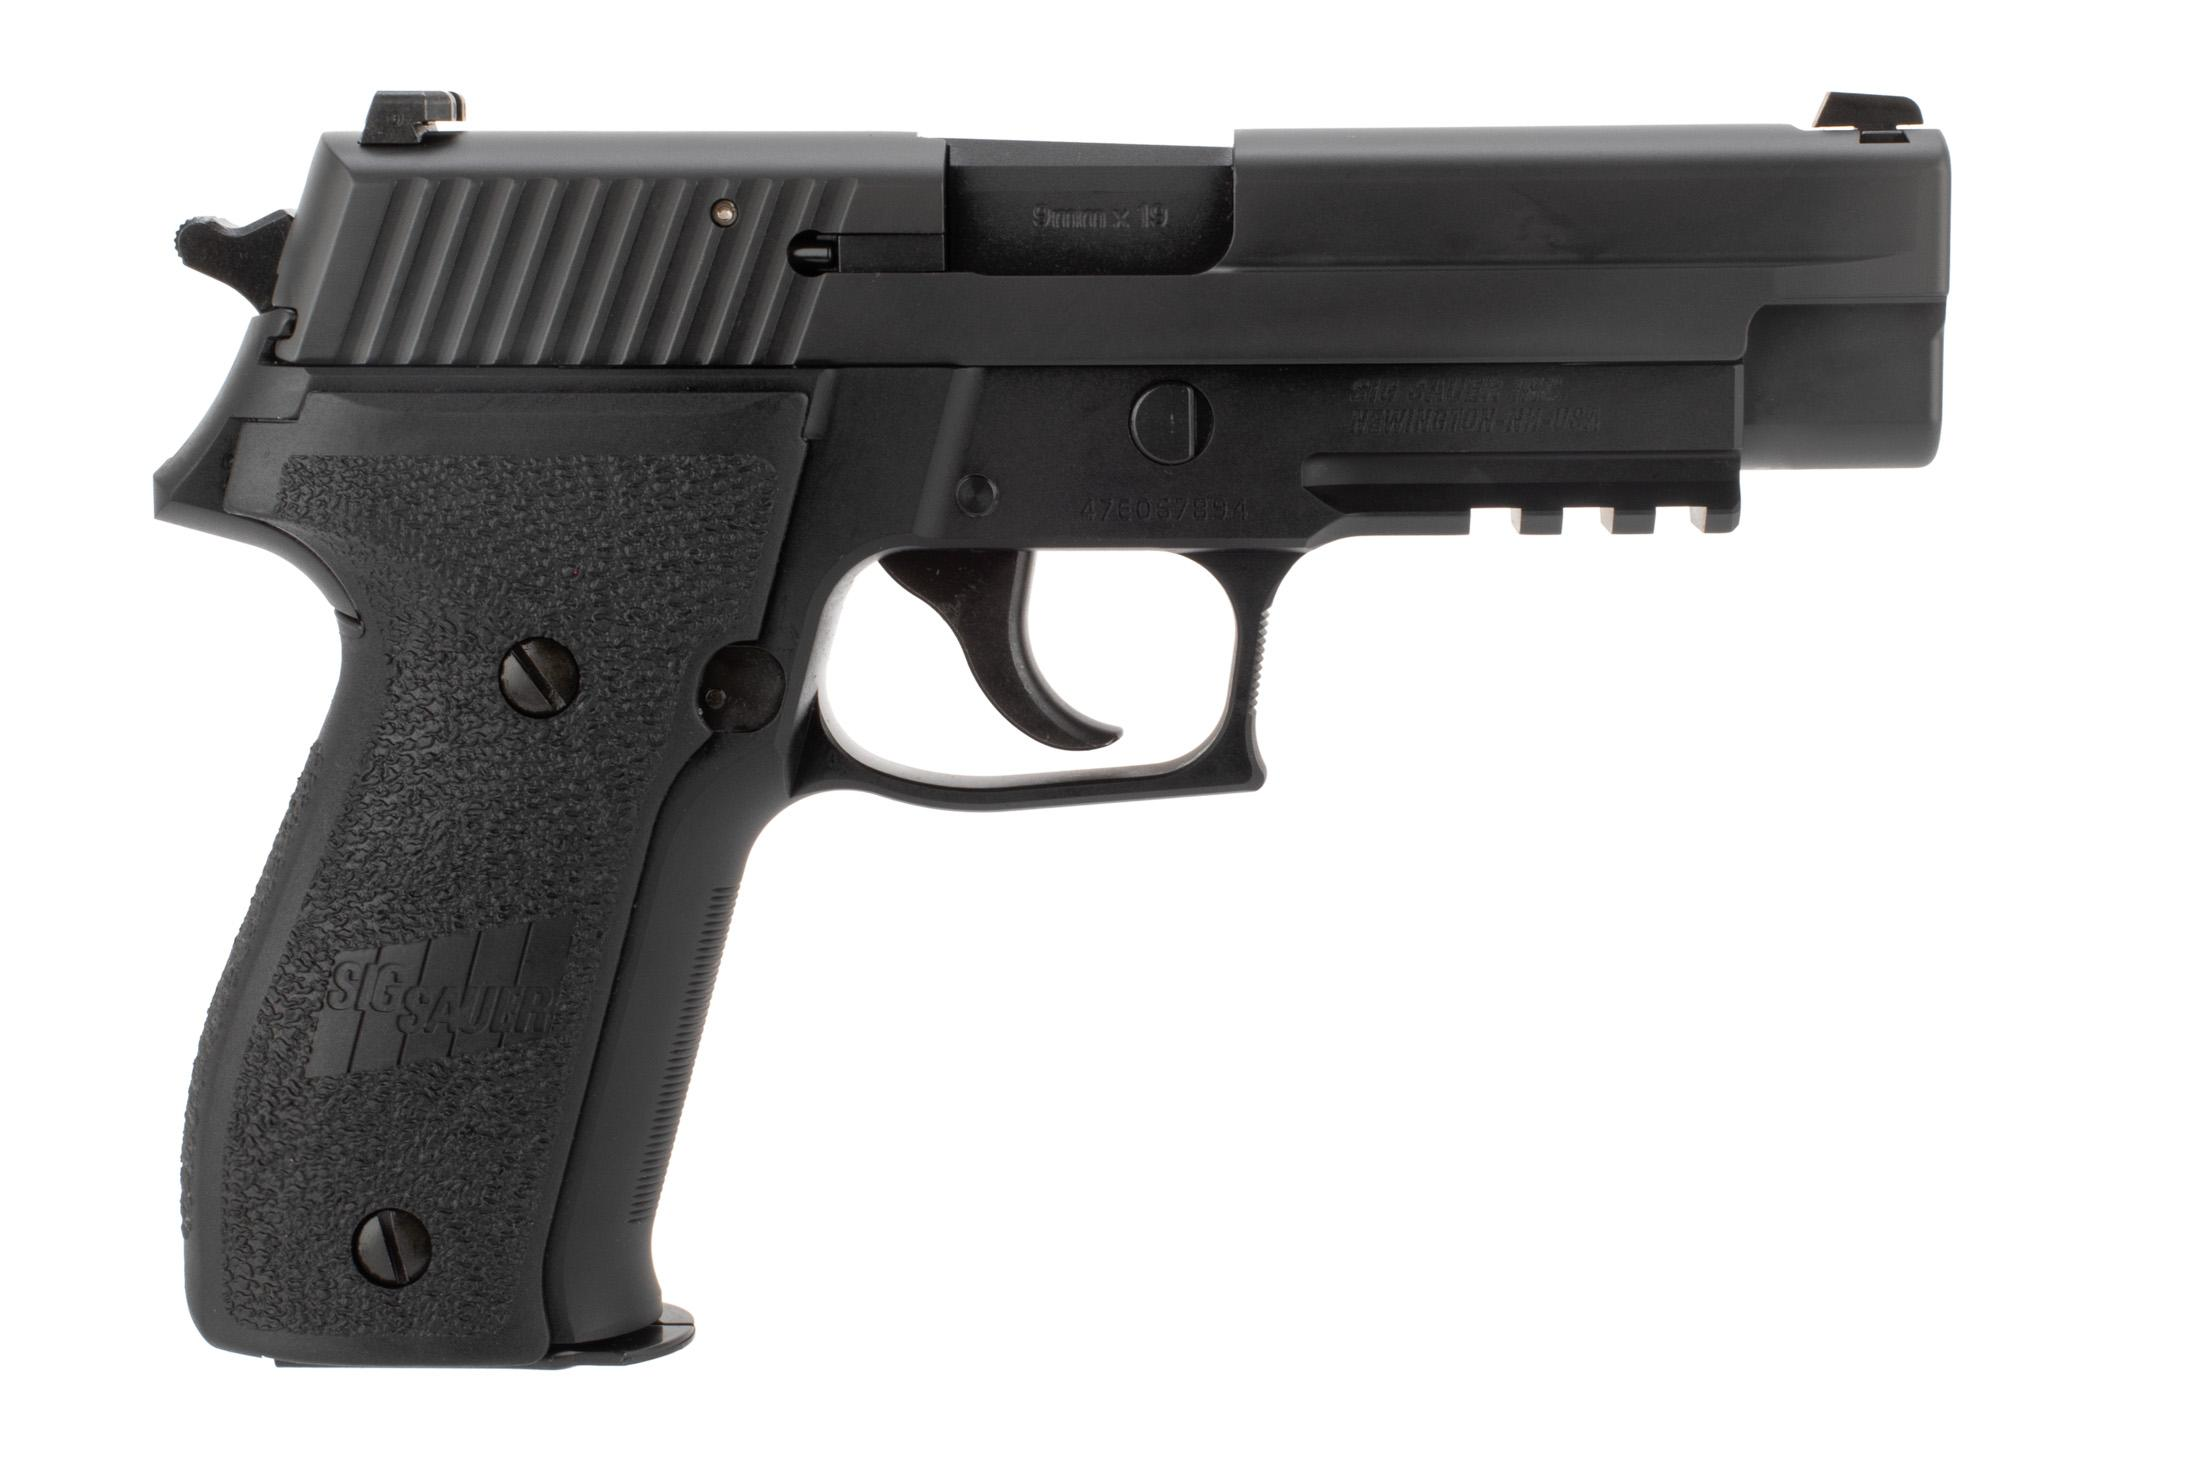 SIG Sauer P226 MK25 9mm Full Size 15rnd Handgun with Night Sights, 4.4 Barrel and is a double action hammer fired design